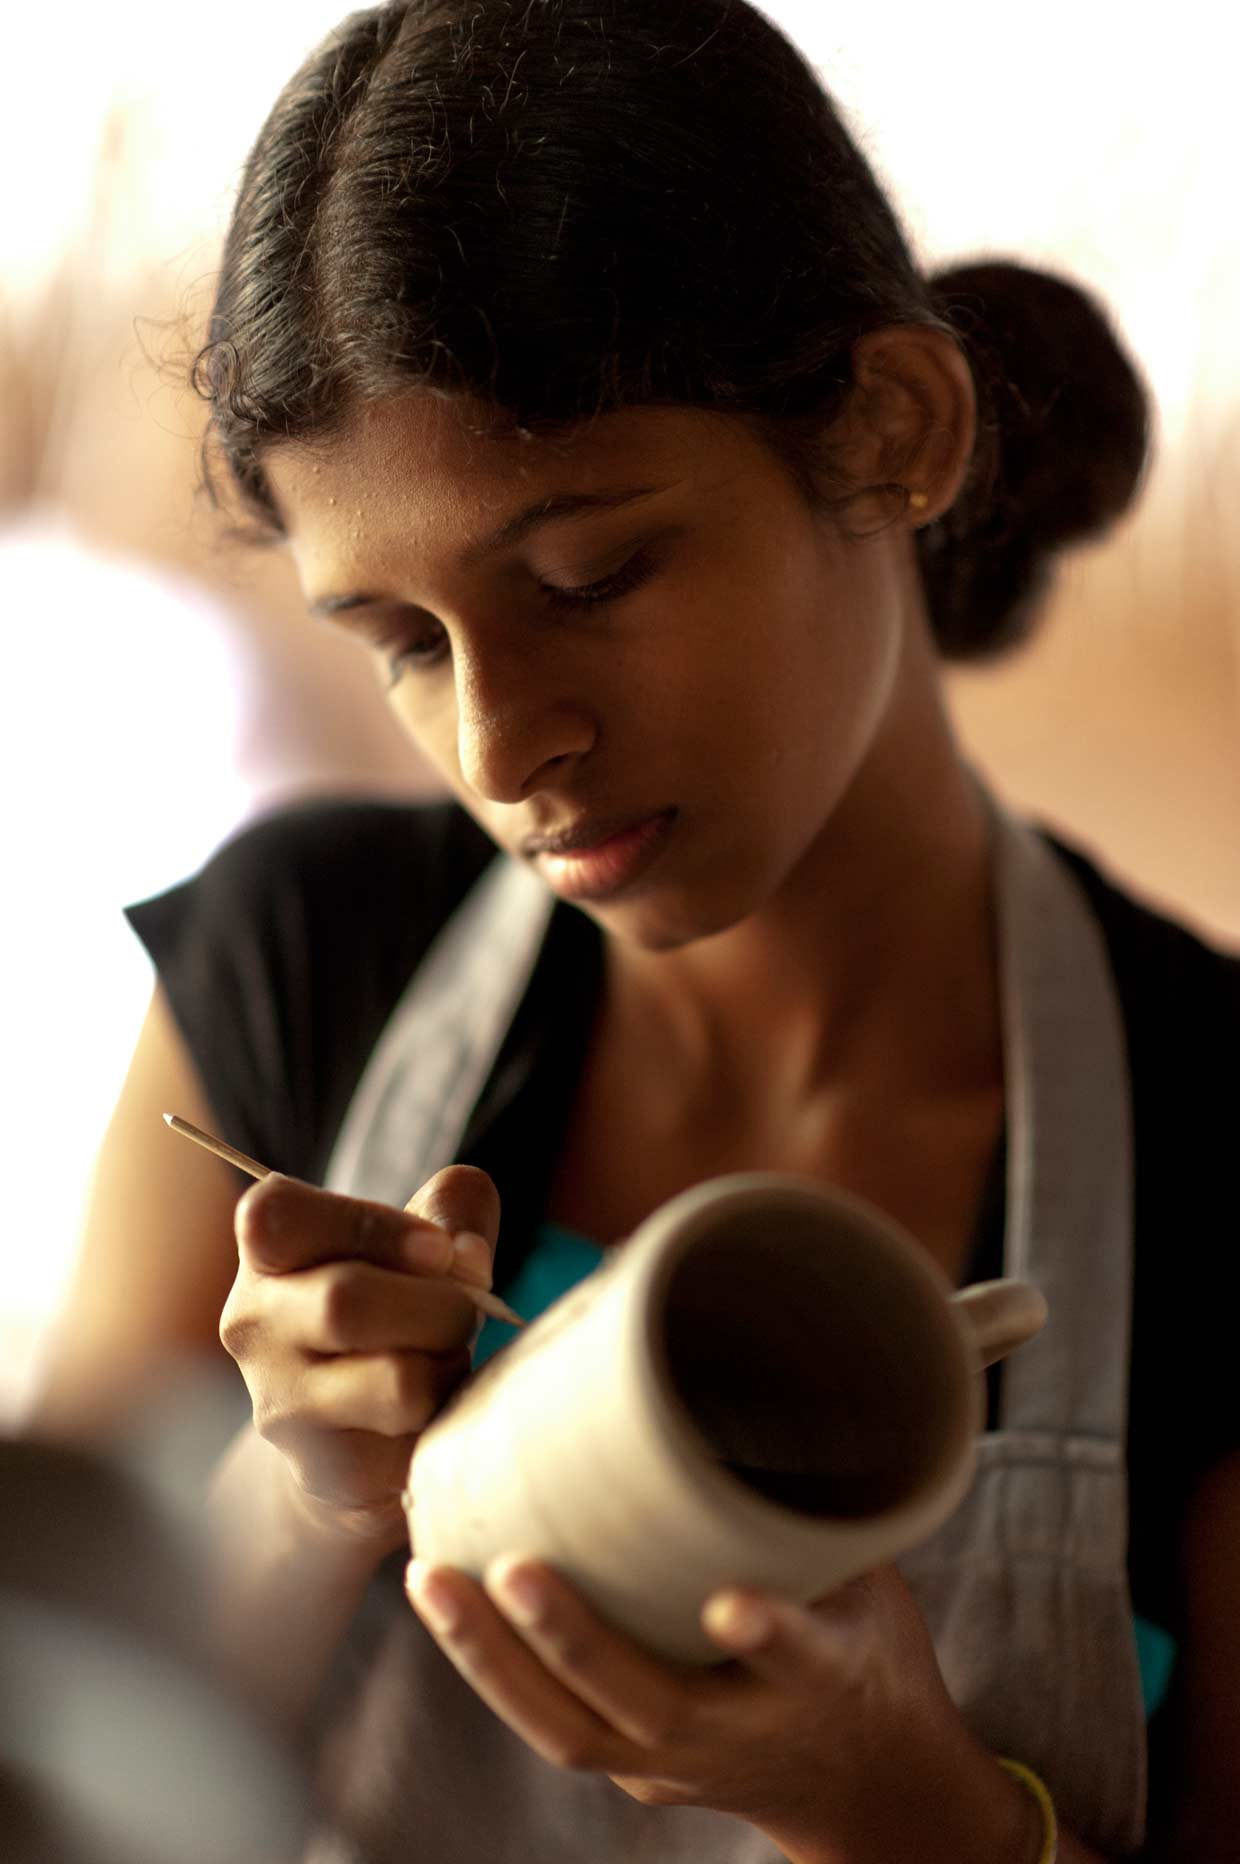 Empowering a rural community of potters to live better lives through the efforts of Mankada – the Merrill J. Fernando Centre for Arts and Crafts in the village of Udawalawe in south eastern Sri Lanka since 2007.